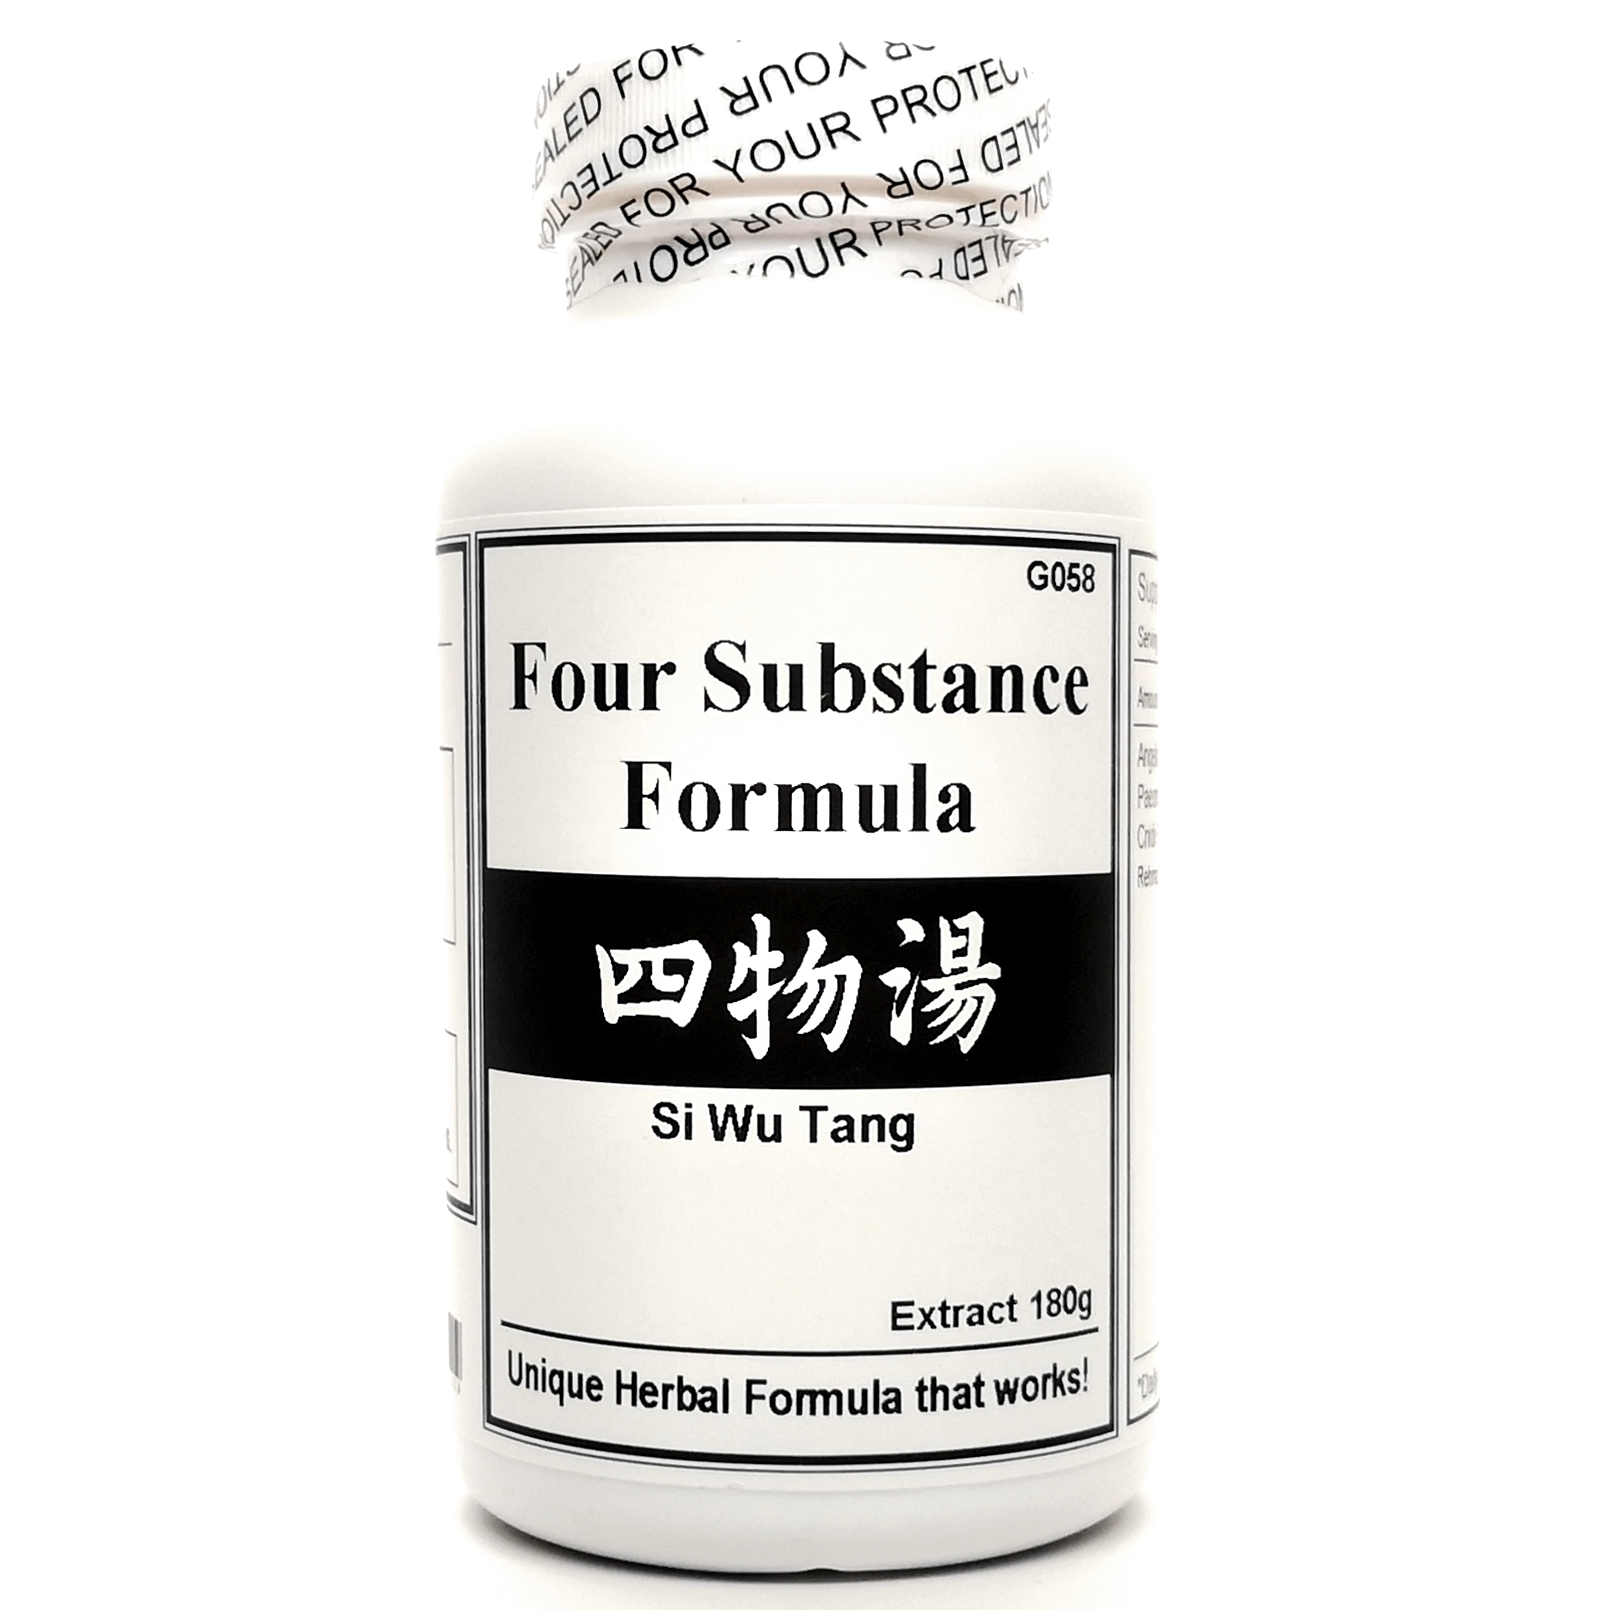 Four Substance Formula Extract Powder Instant Herbal Tea 180g  (Si Wu Tang)